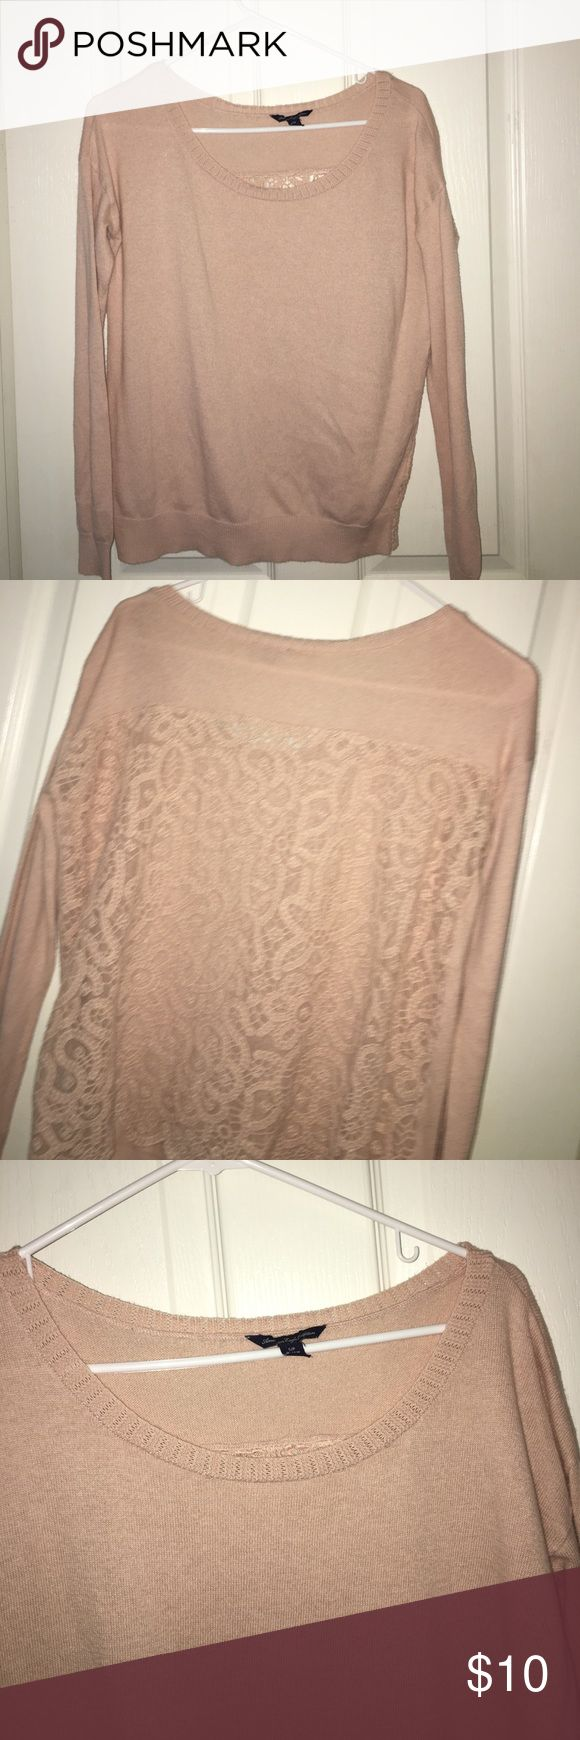 American Eagle Sweater American Eagle Sweater, design on the back, good quality American Eagle Outfitters Tops Tees - Long Sleeve